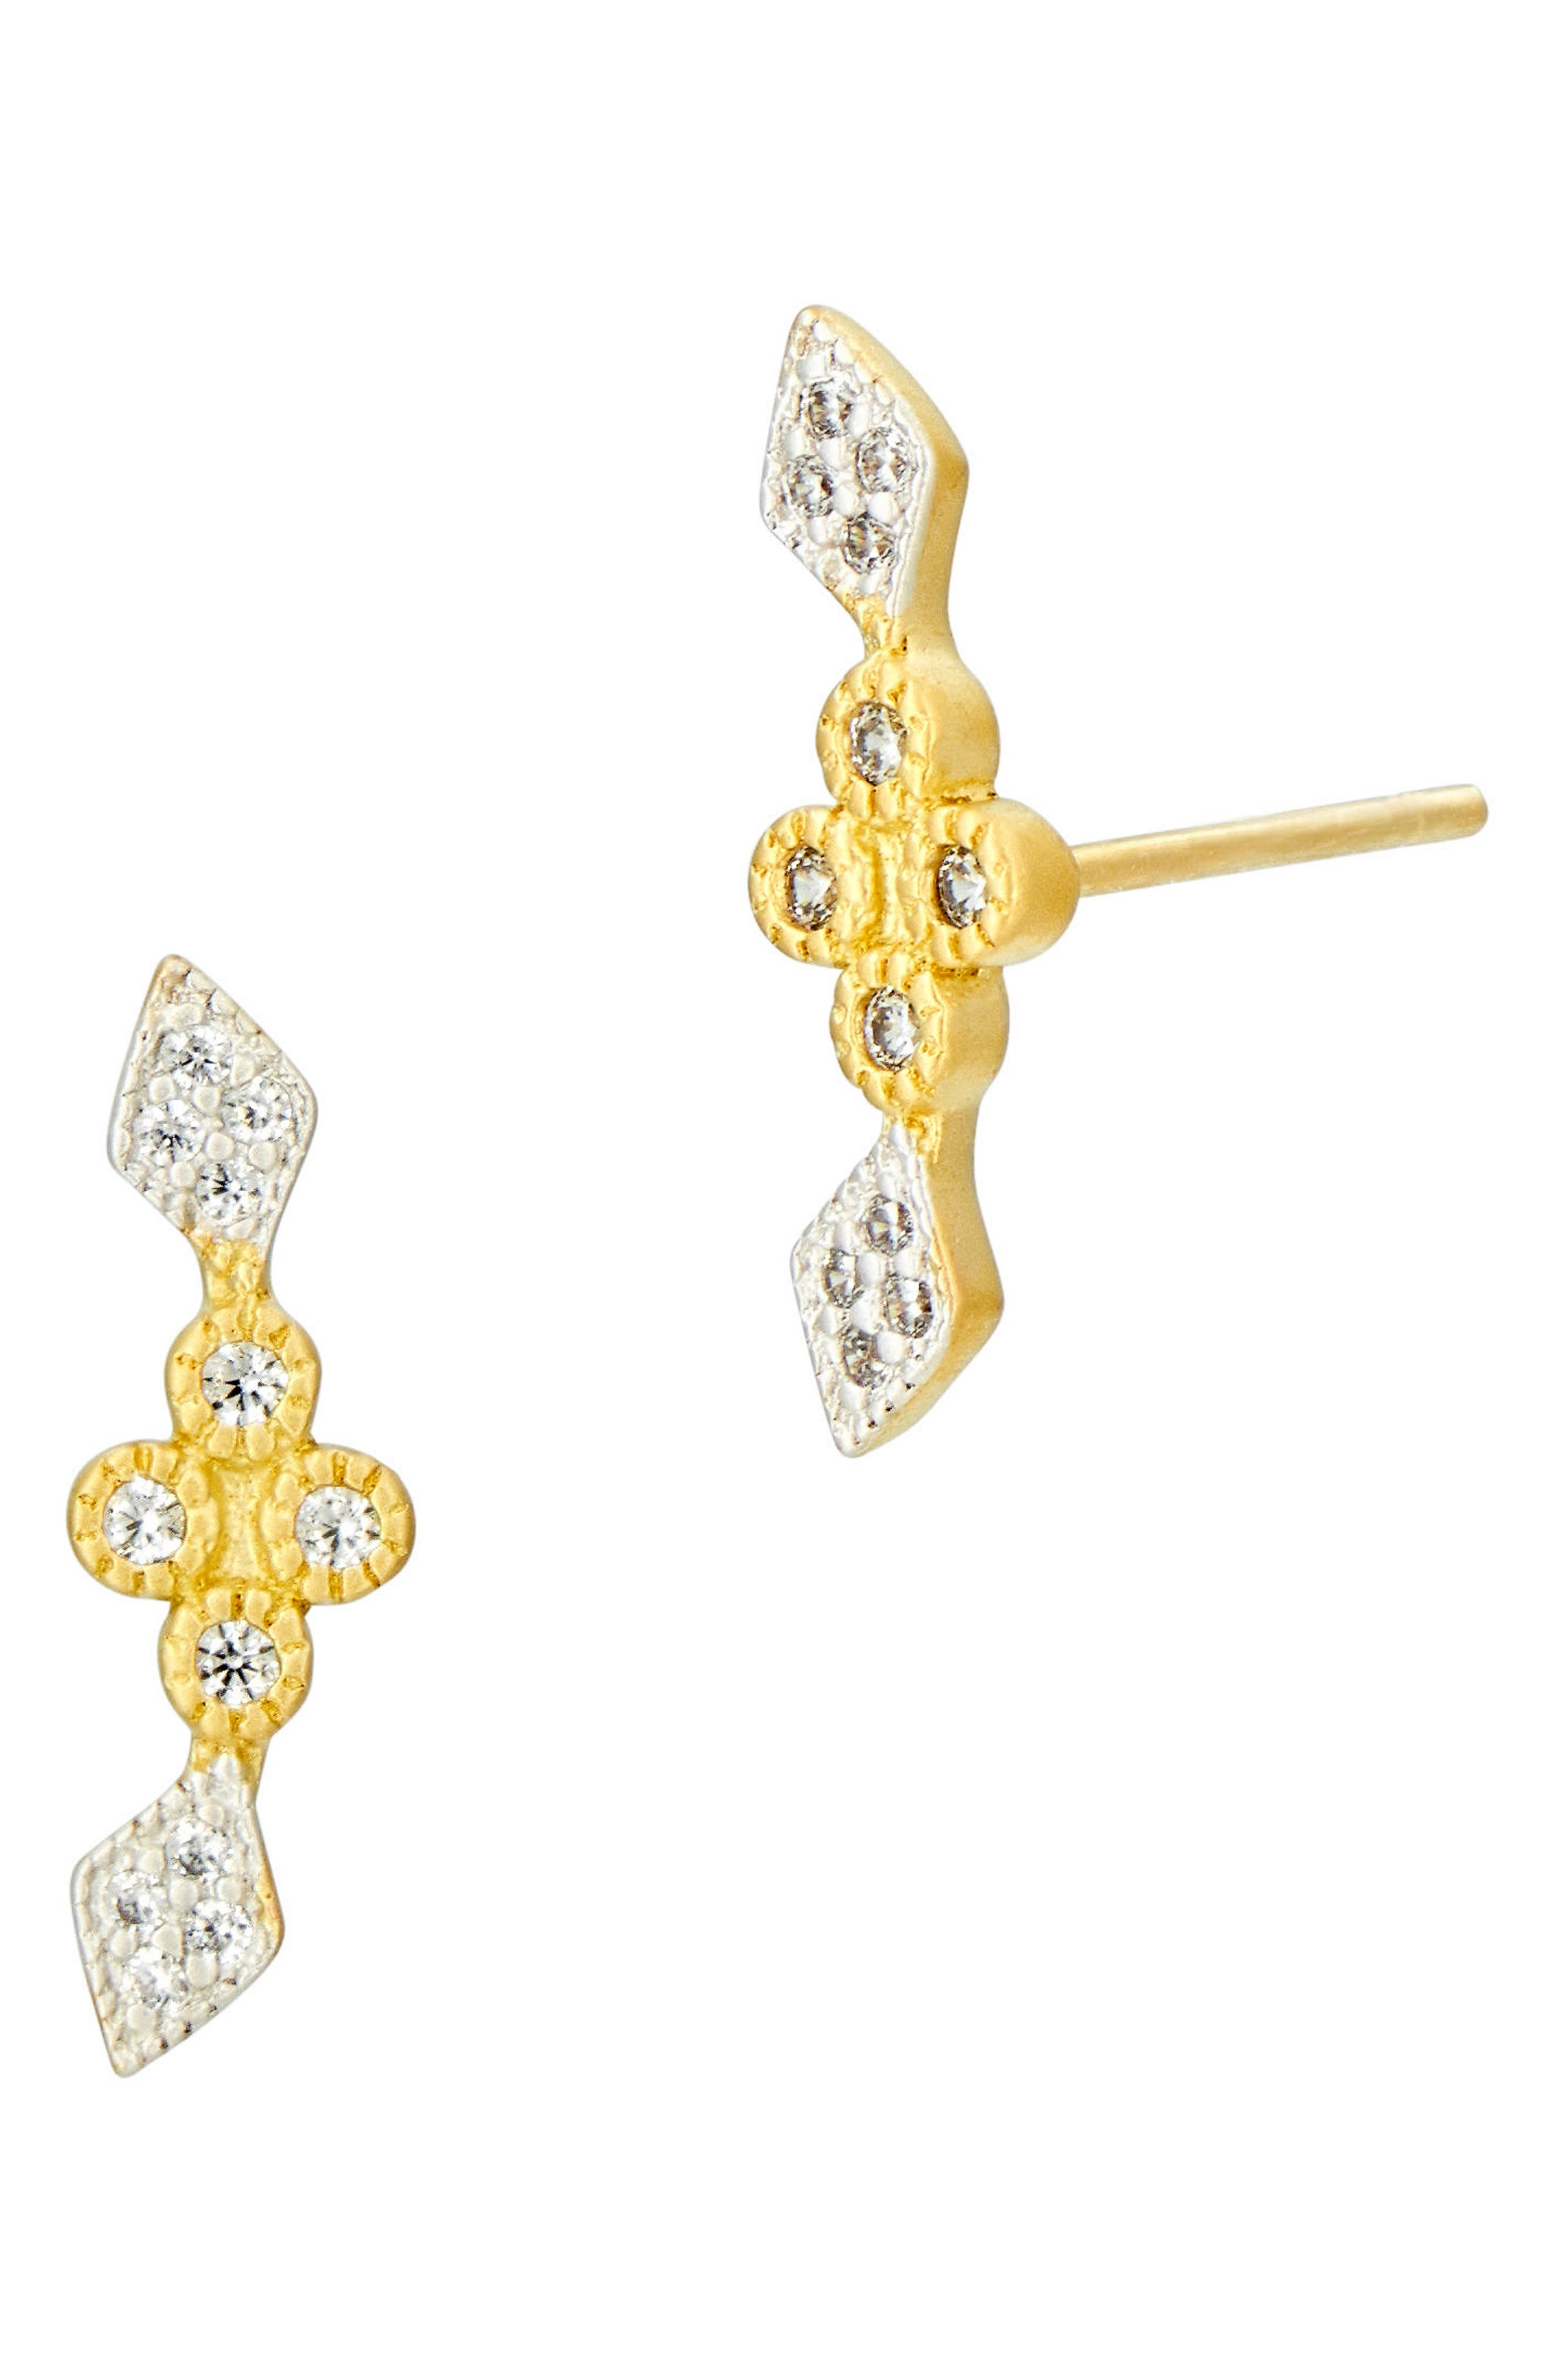 Main Image - FREIDA ROTHMAN Visionary Fusion Stud Earrings